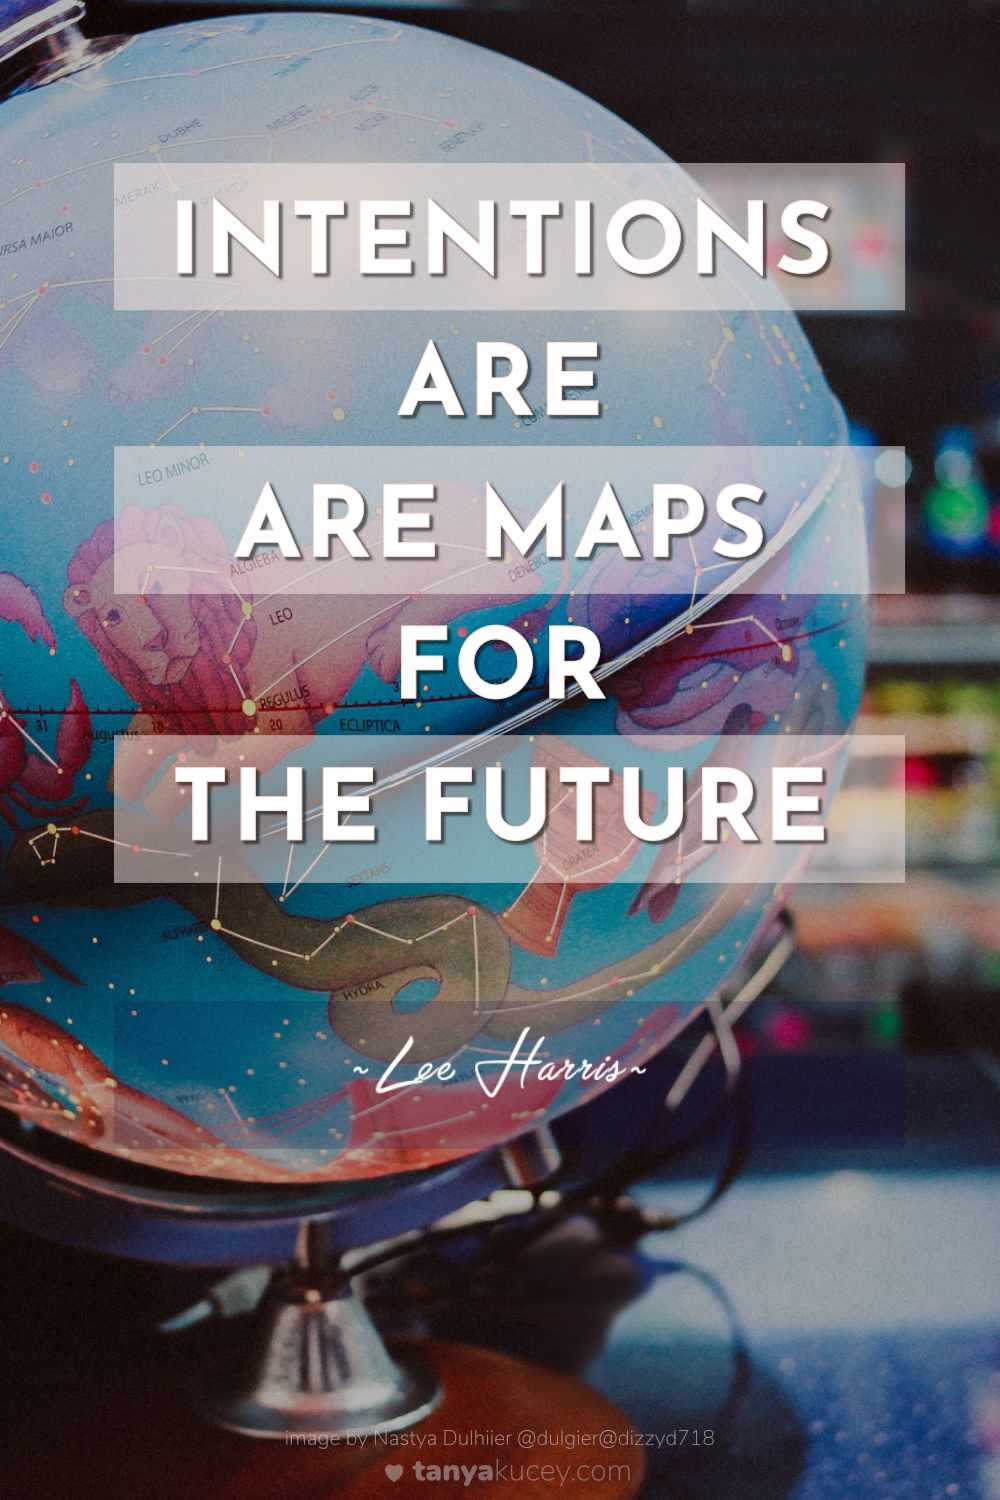 Quotes by Lee Harris. Intentions are maps for the future. Spiritual Quotes. Inspirational quotes